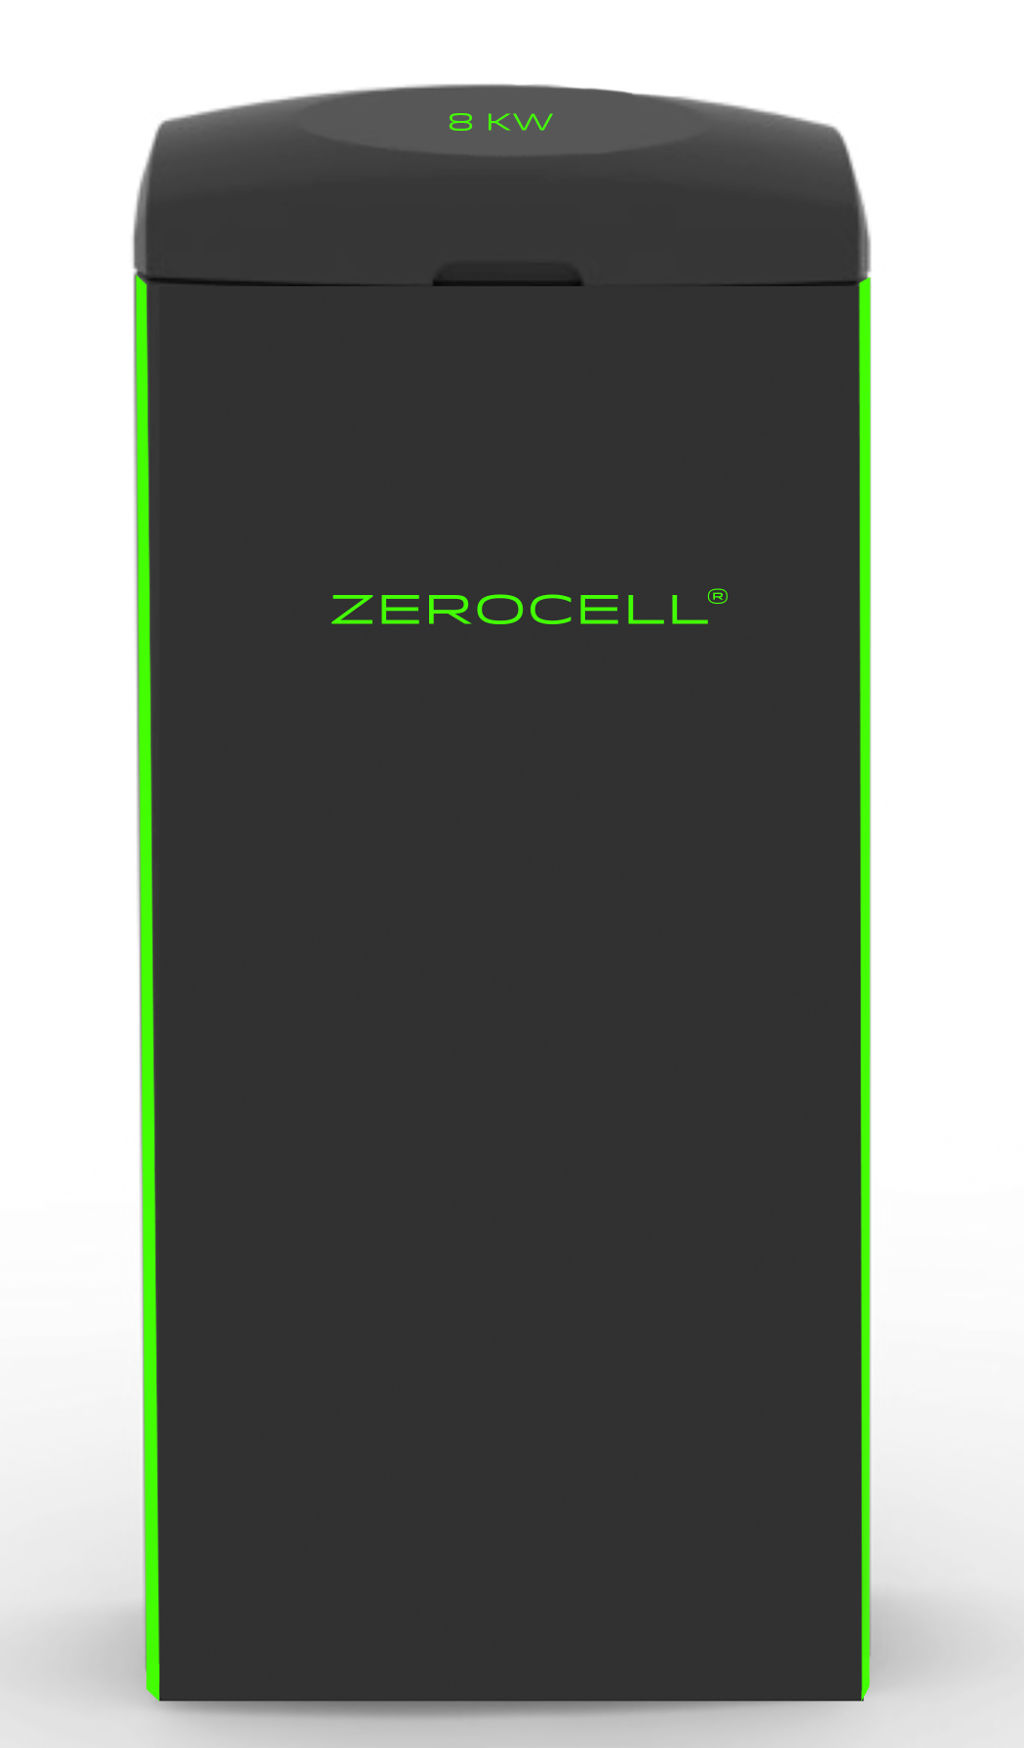 ZEROCELL is the Nerve Center for Smart Zero Energy Home Open Source